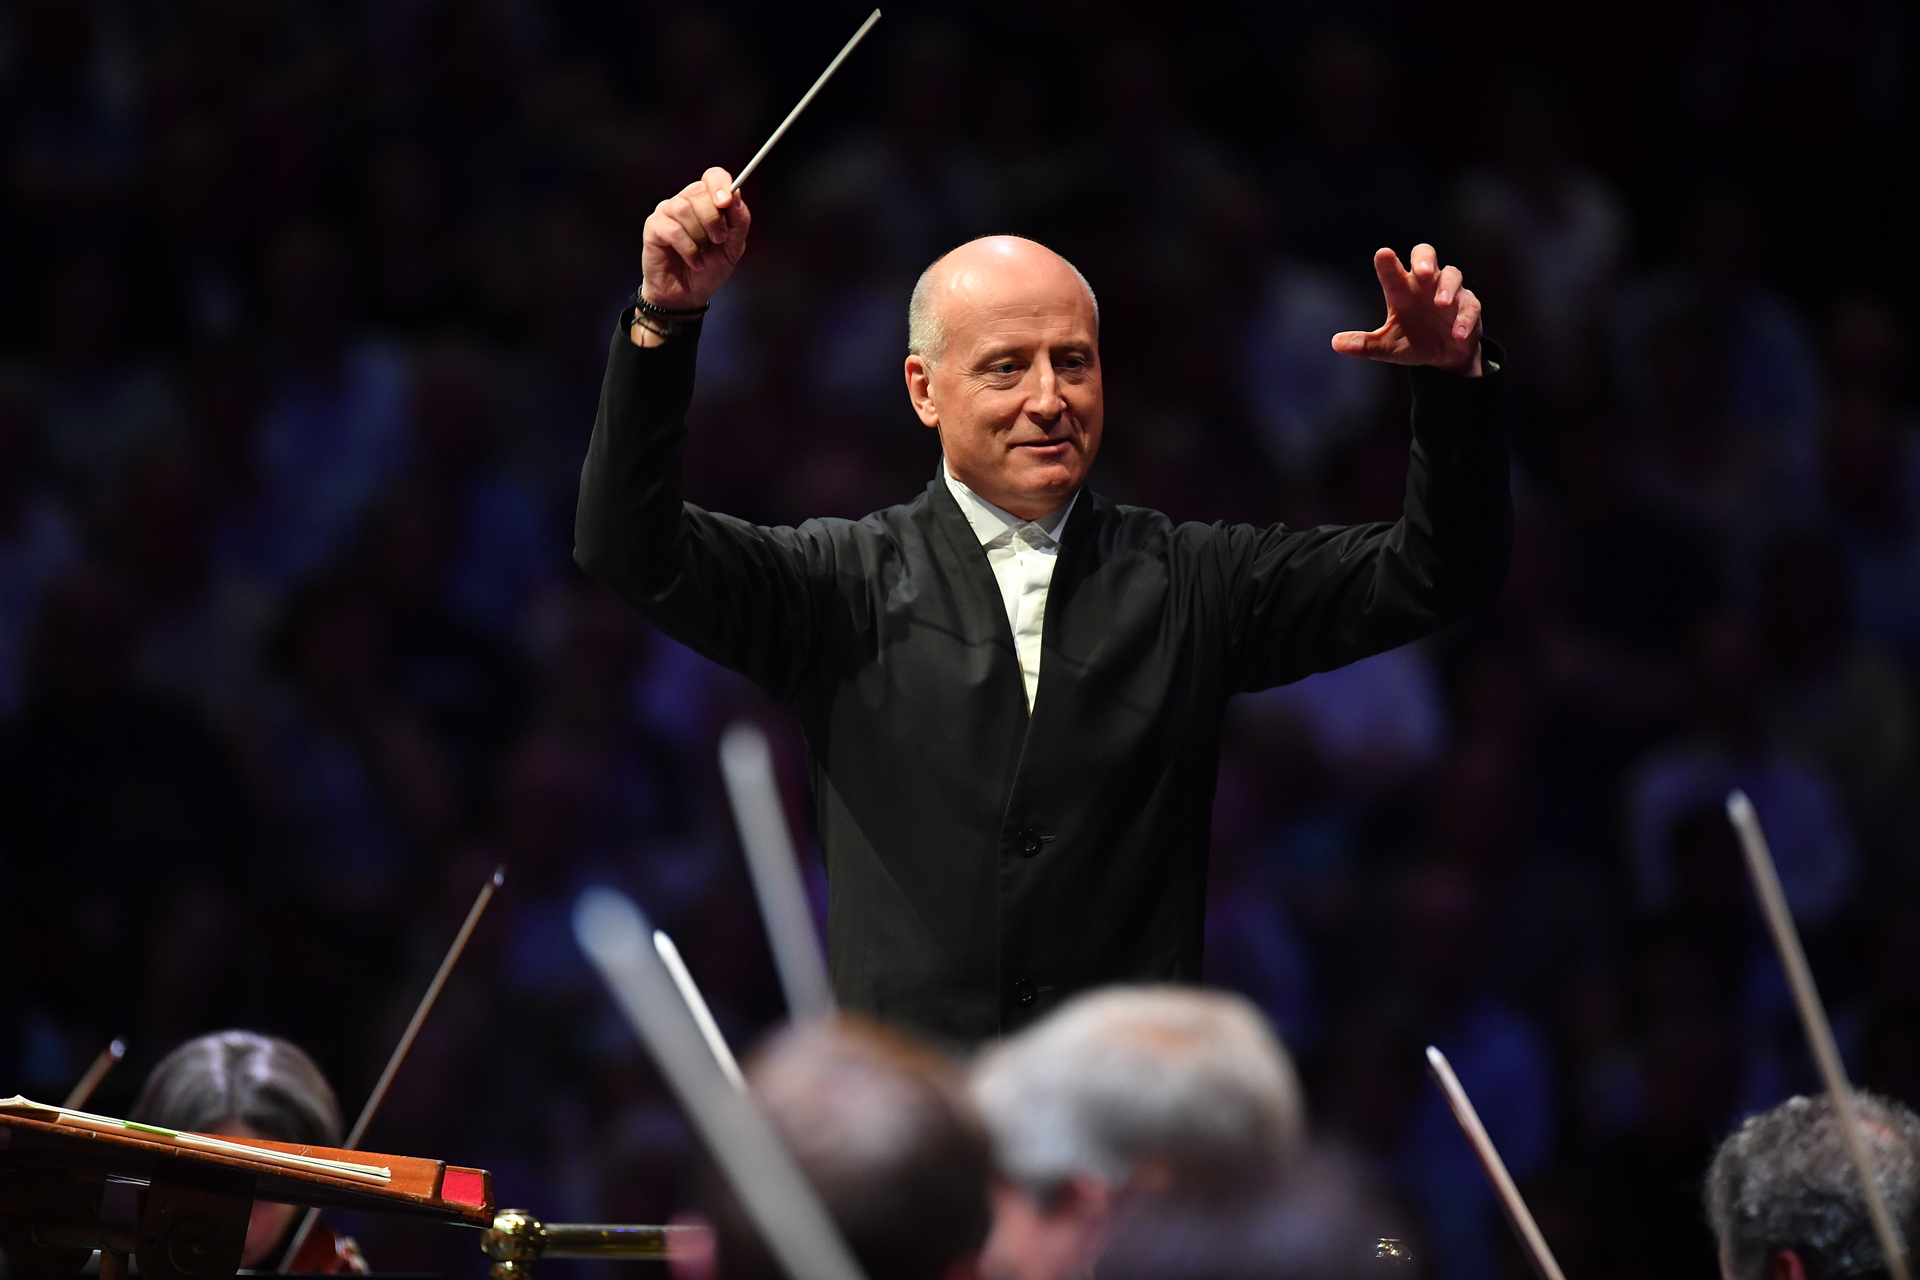 Paavo Jarvi at the Proms